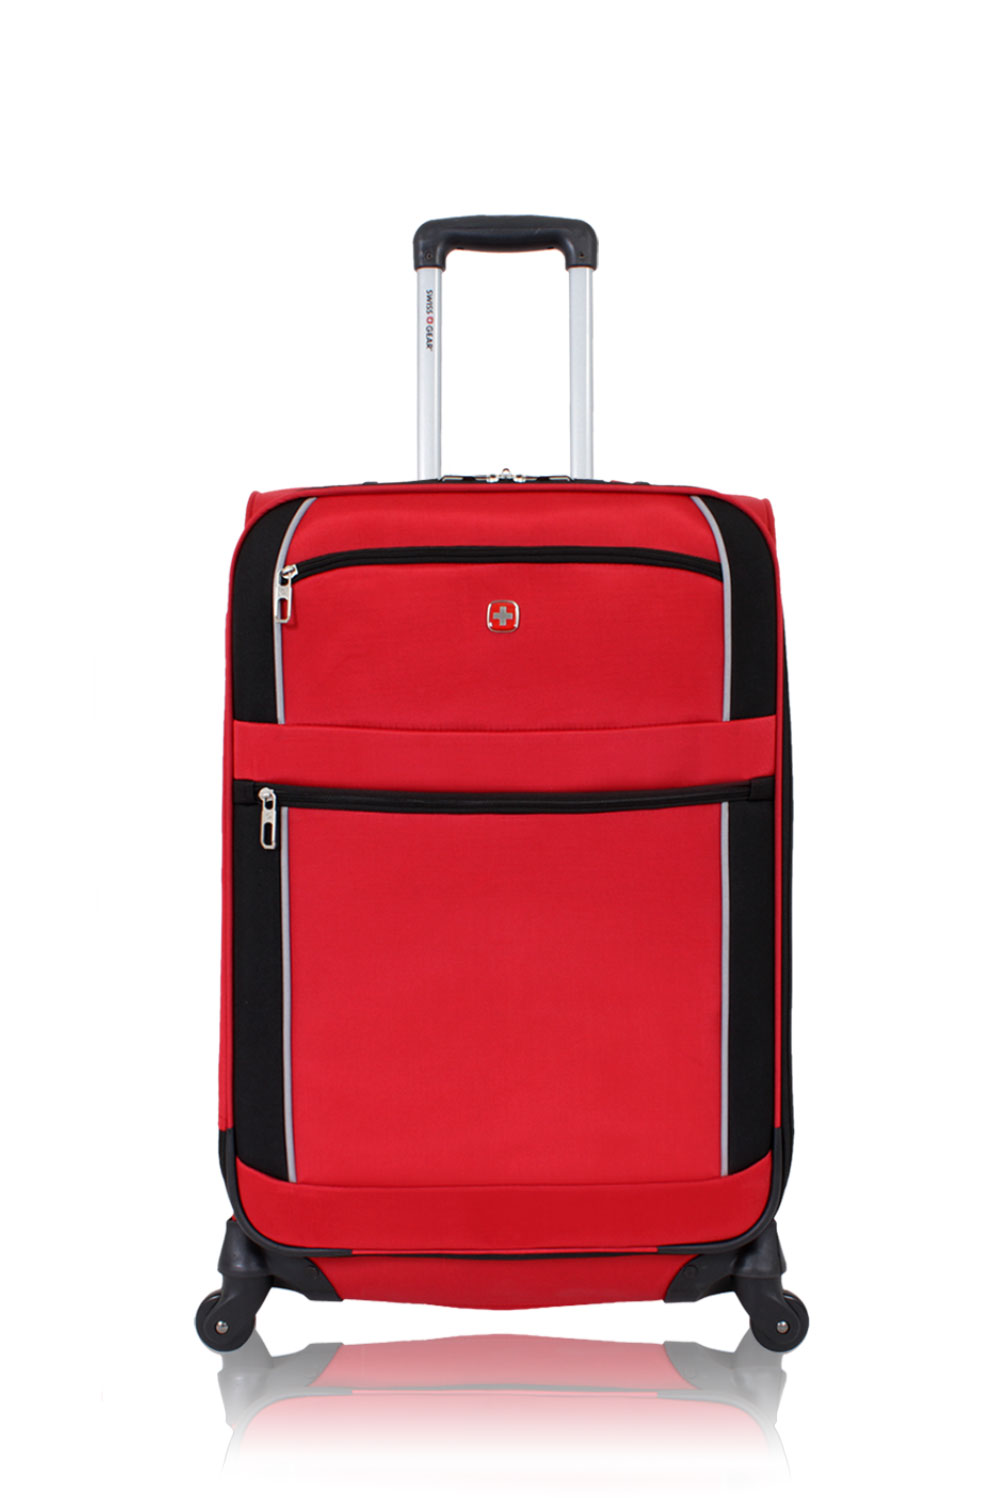 "SWISSGEAR 7378 24"" Expandable Spinner Luggage"